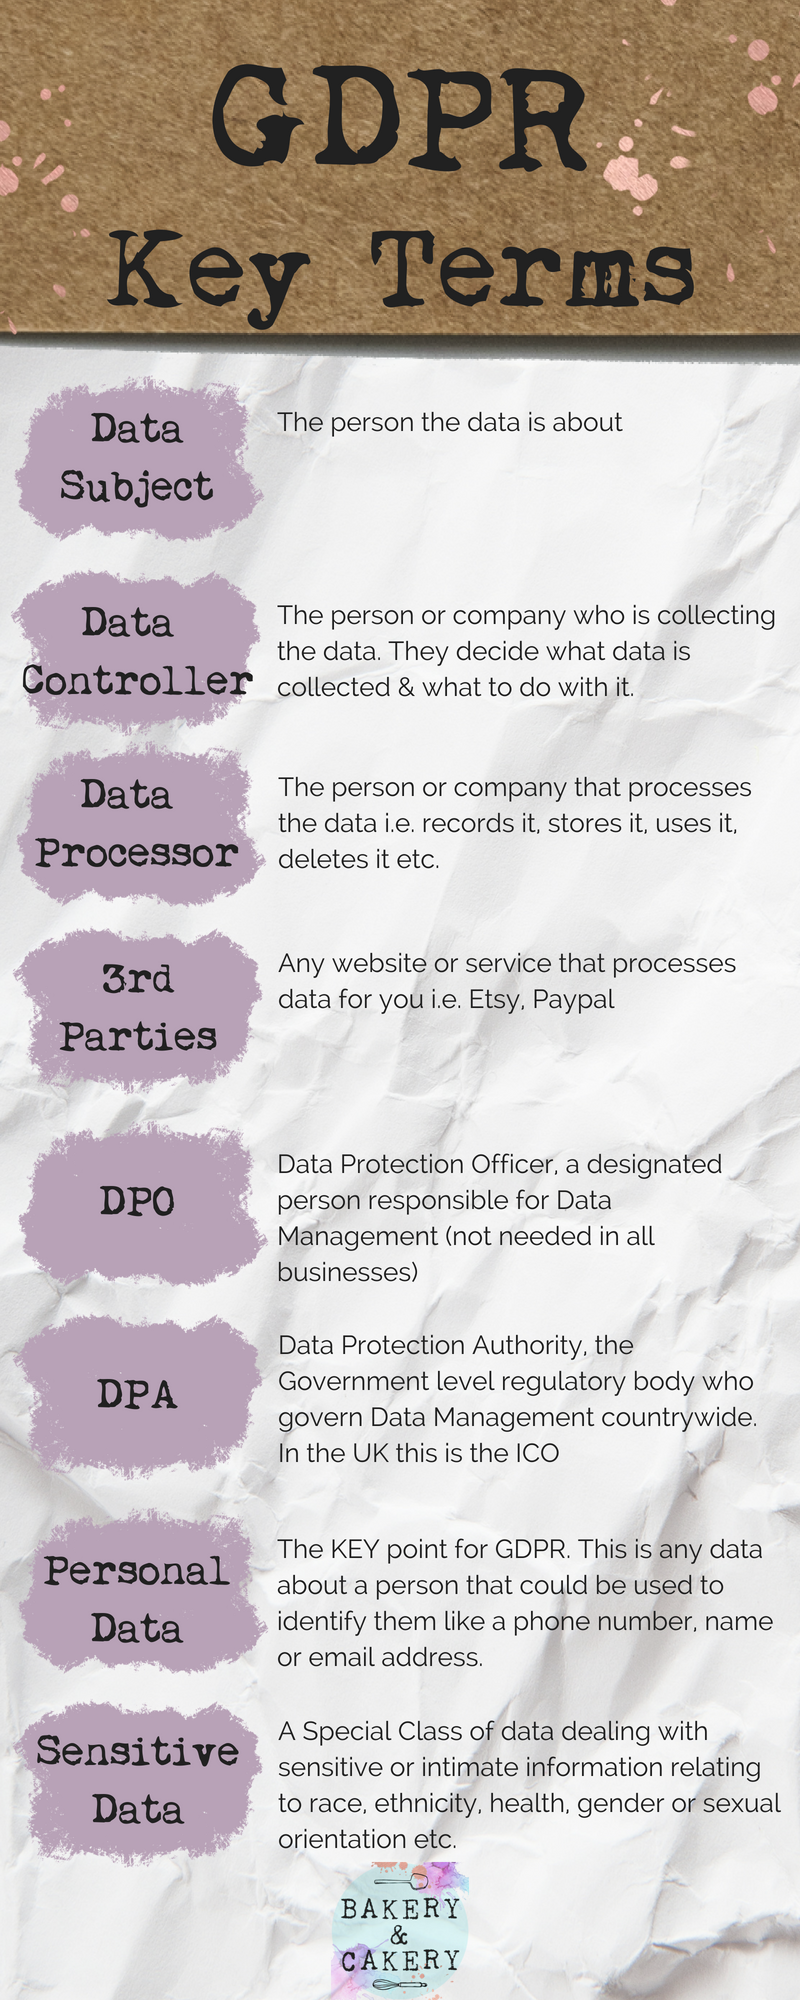 GDPR Key Terms Defined